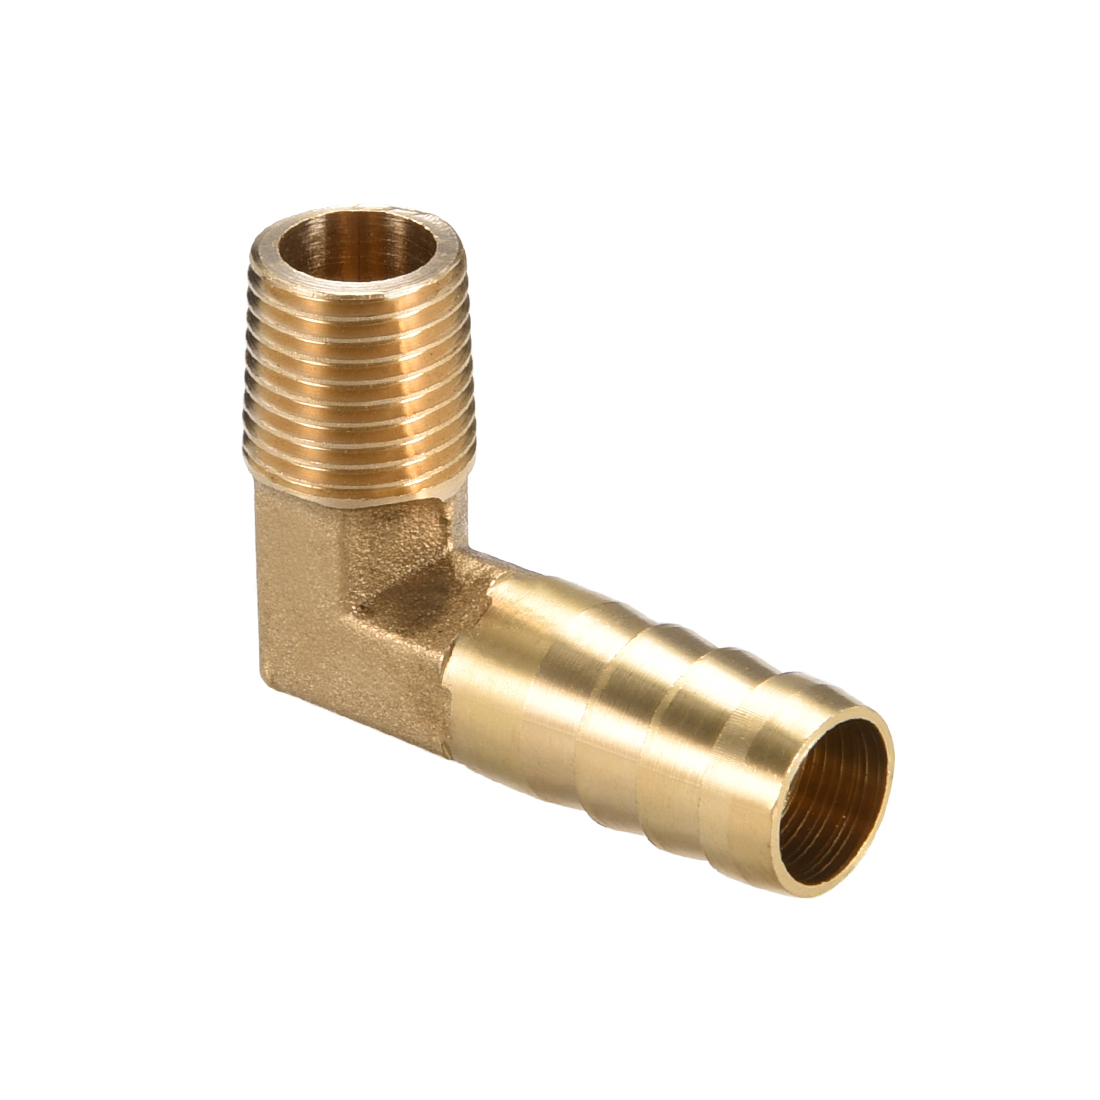 """Brass Barb Hose Fitting 90 Degree Elbow 12mm Barbed x 1/4"""" G Male Pipe"""